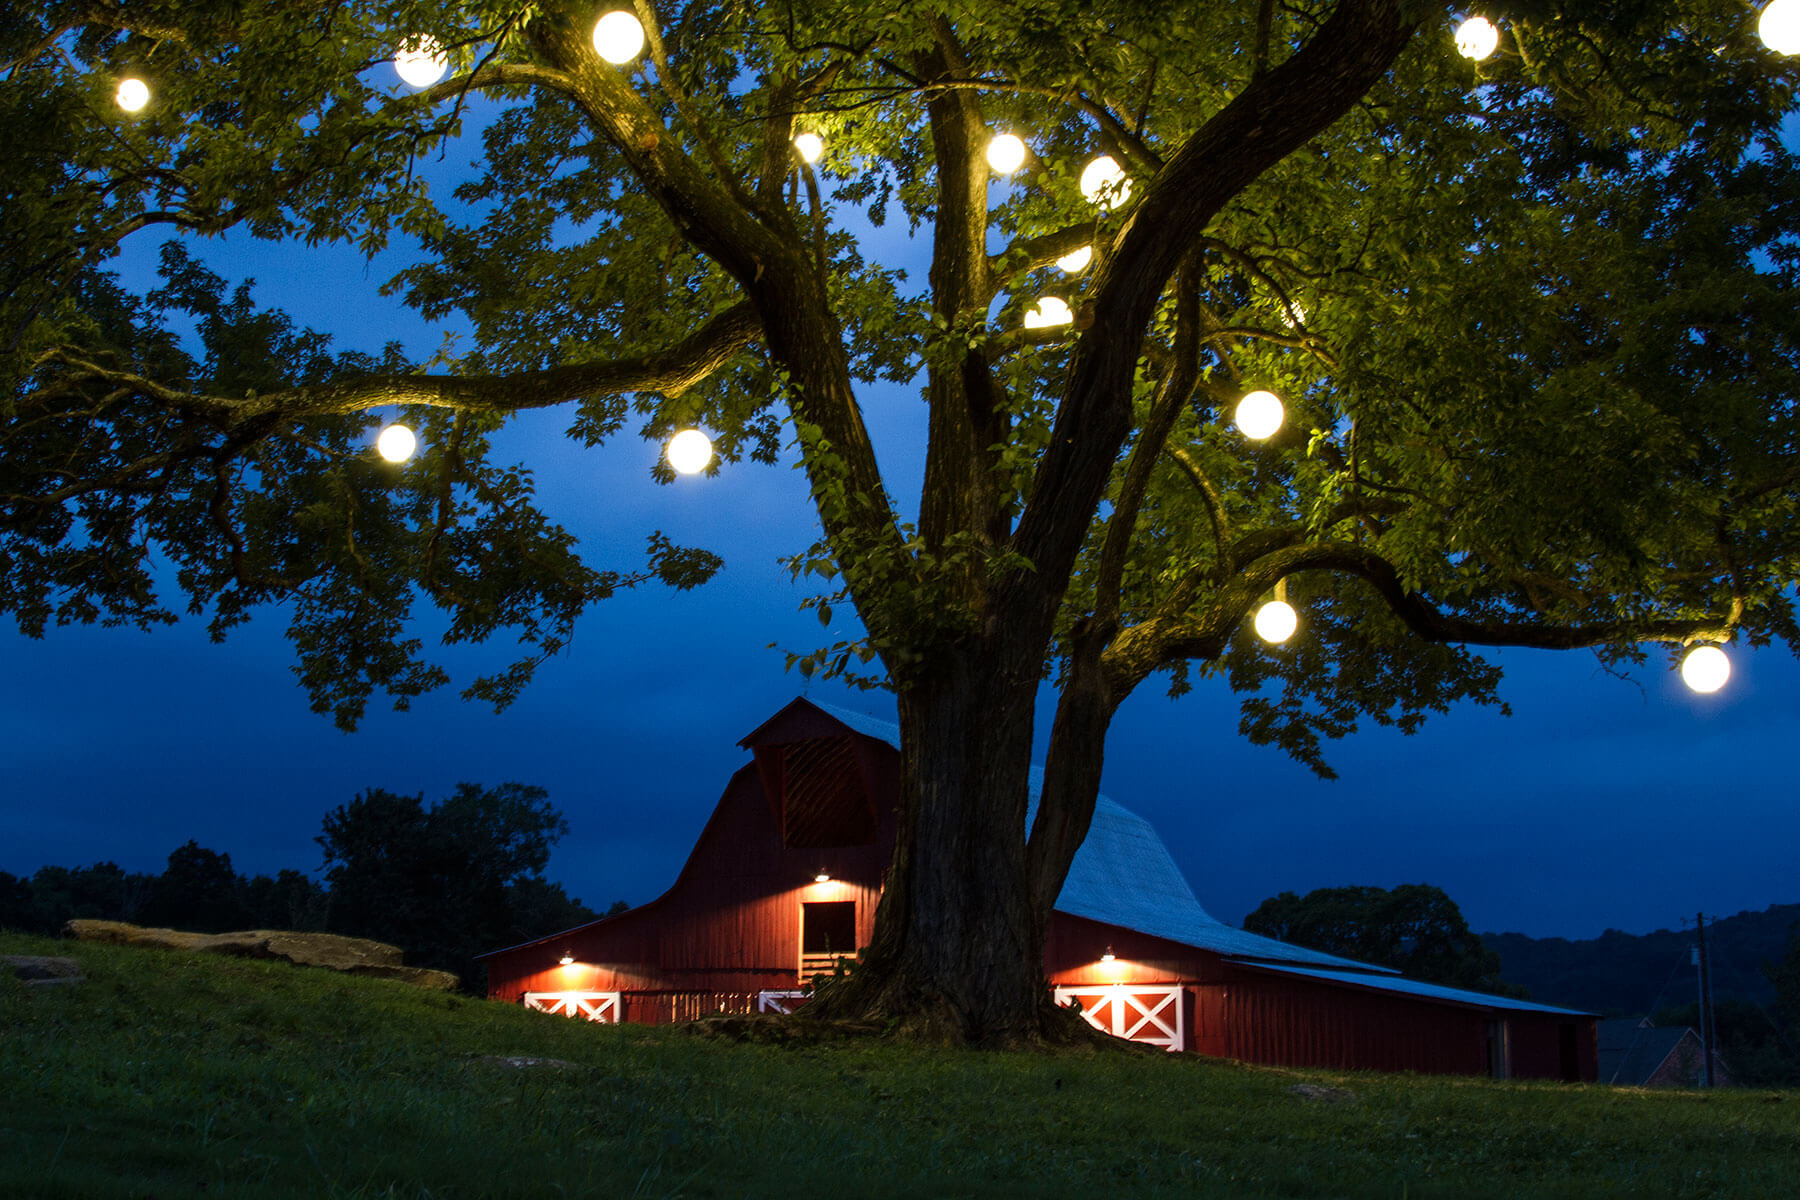 Lights hung on a tree near a barn